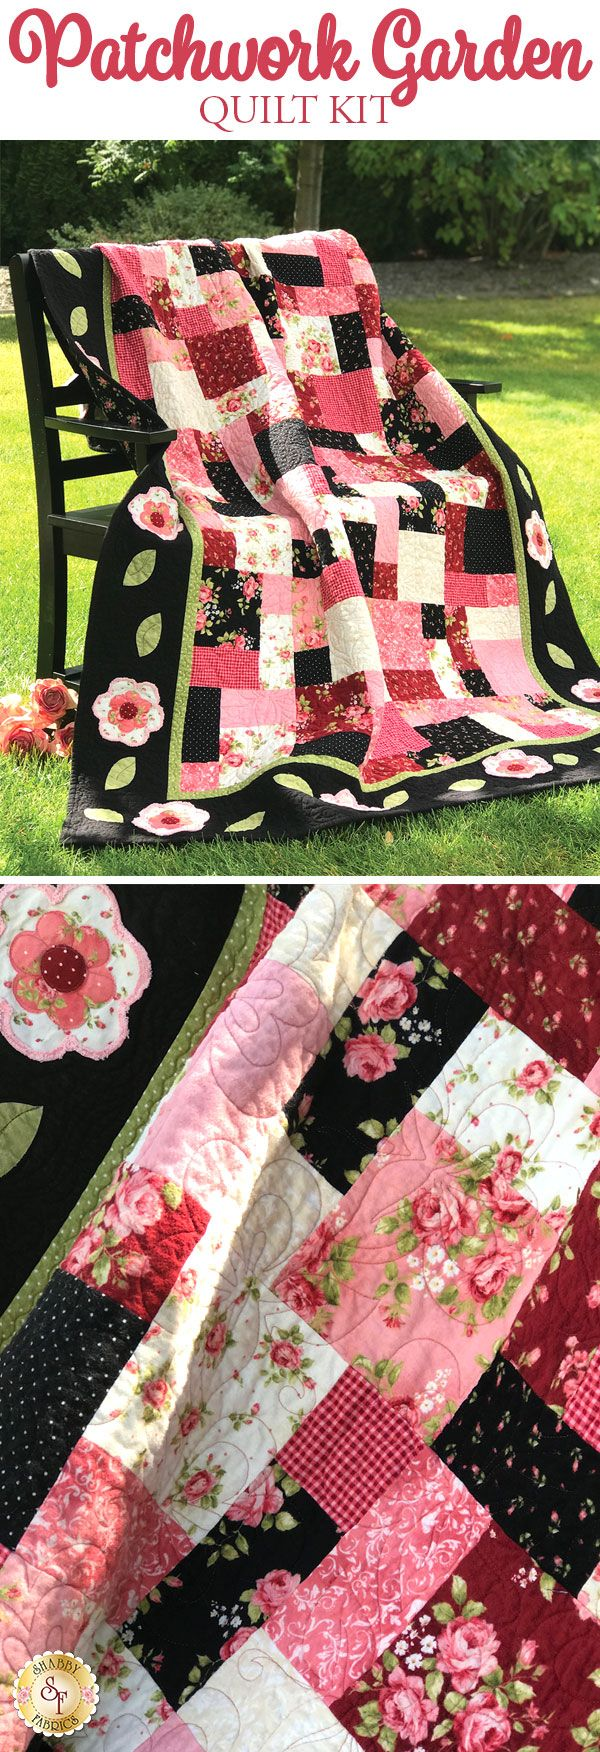 The Patchwork Garden Flannel Quilt is a darling Shabby Fabrics original design. Gorgeous pinks and beautiful black florals combine in romantic harmony to create this stunning quilt! Appliqué flowers adorn the border, adding a sweet and feminine look.